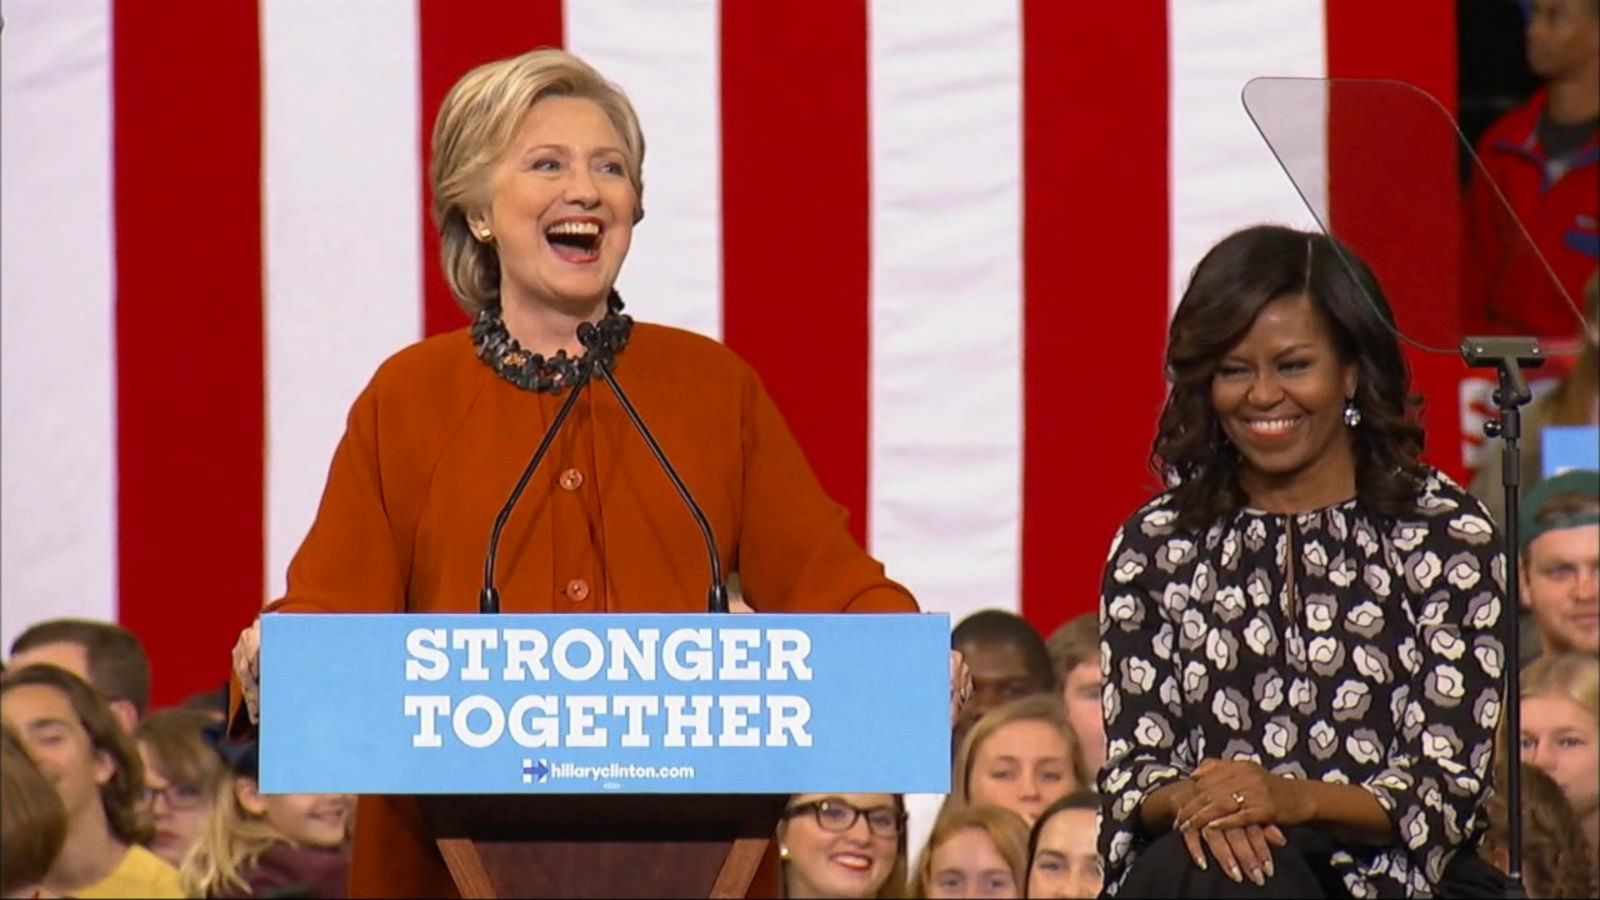 VIDEO: Michelle Obama Joins Hillary Clinton on the Campaign Trail